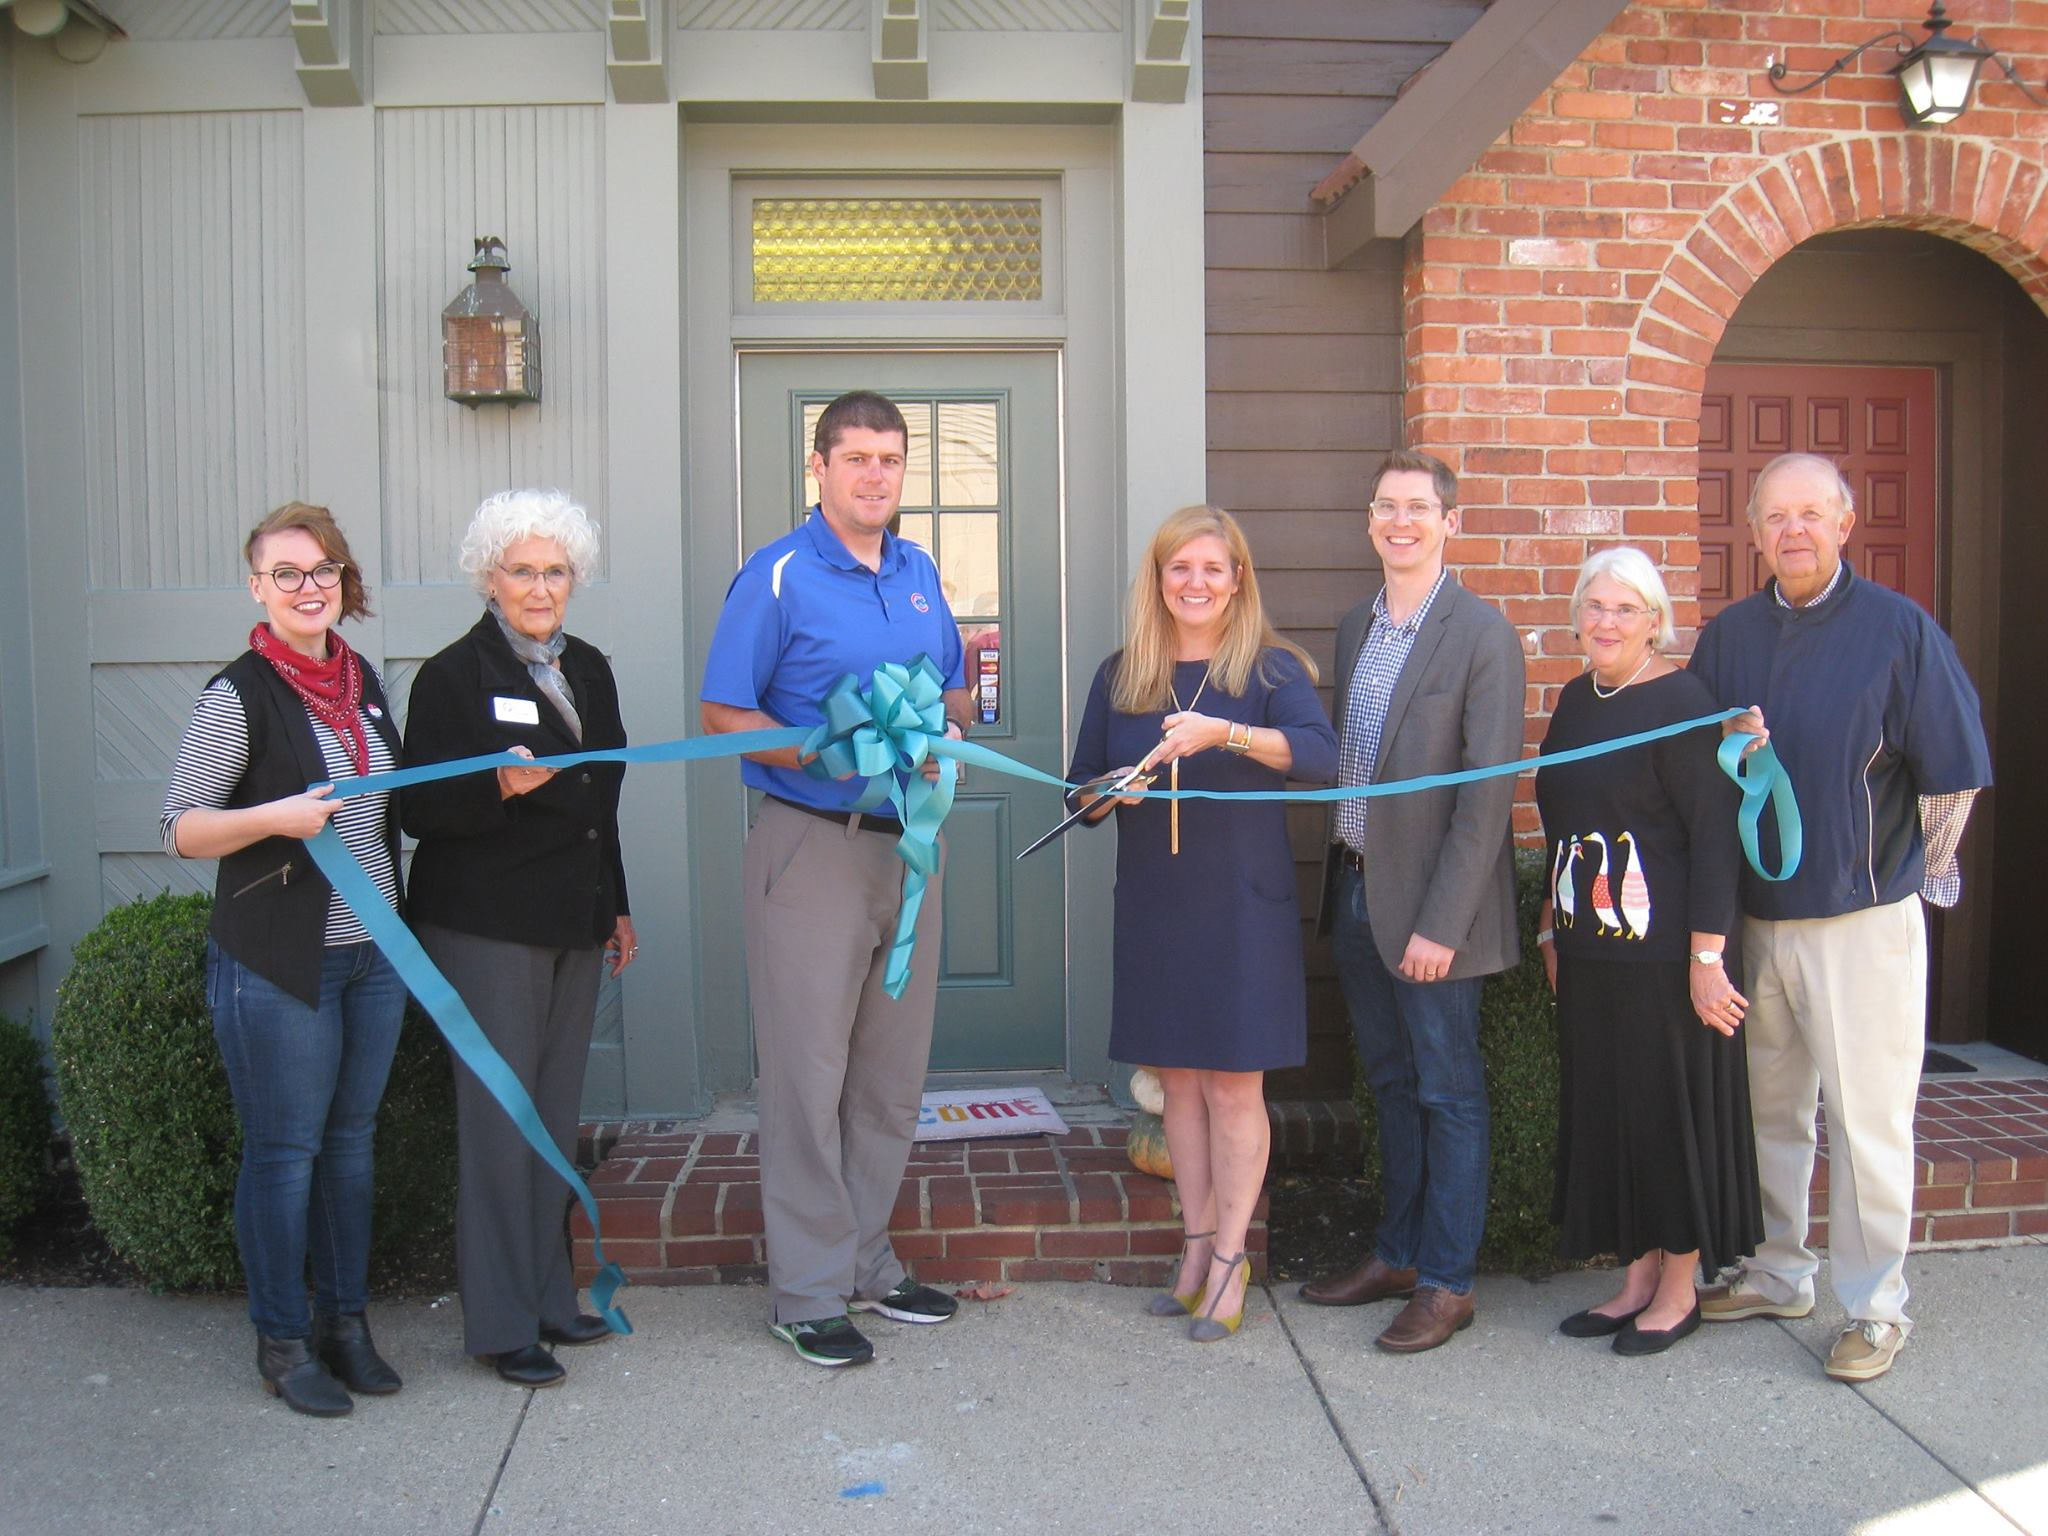 FRANKLIN CHAMBER OF COMMERCE - Wild Geese is a proud member of the Franklin Chamber of Commerce. What a fun day at the ribbon cutting!